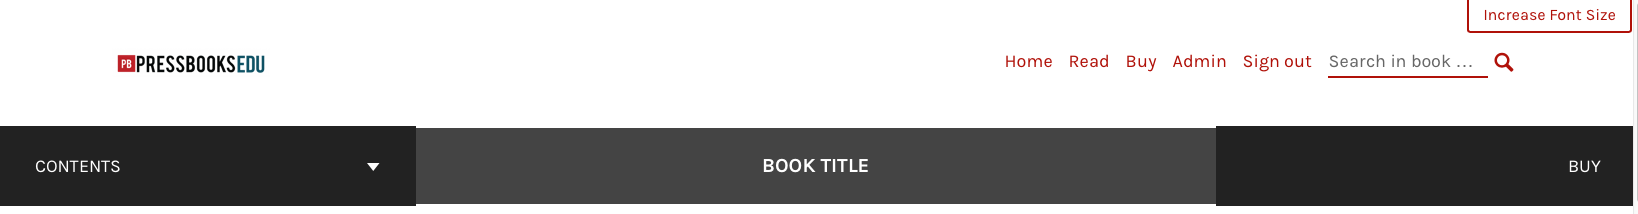 Header of the webbook interface